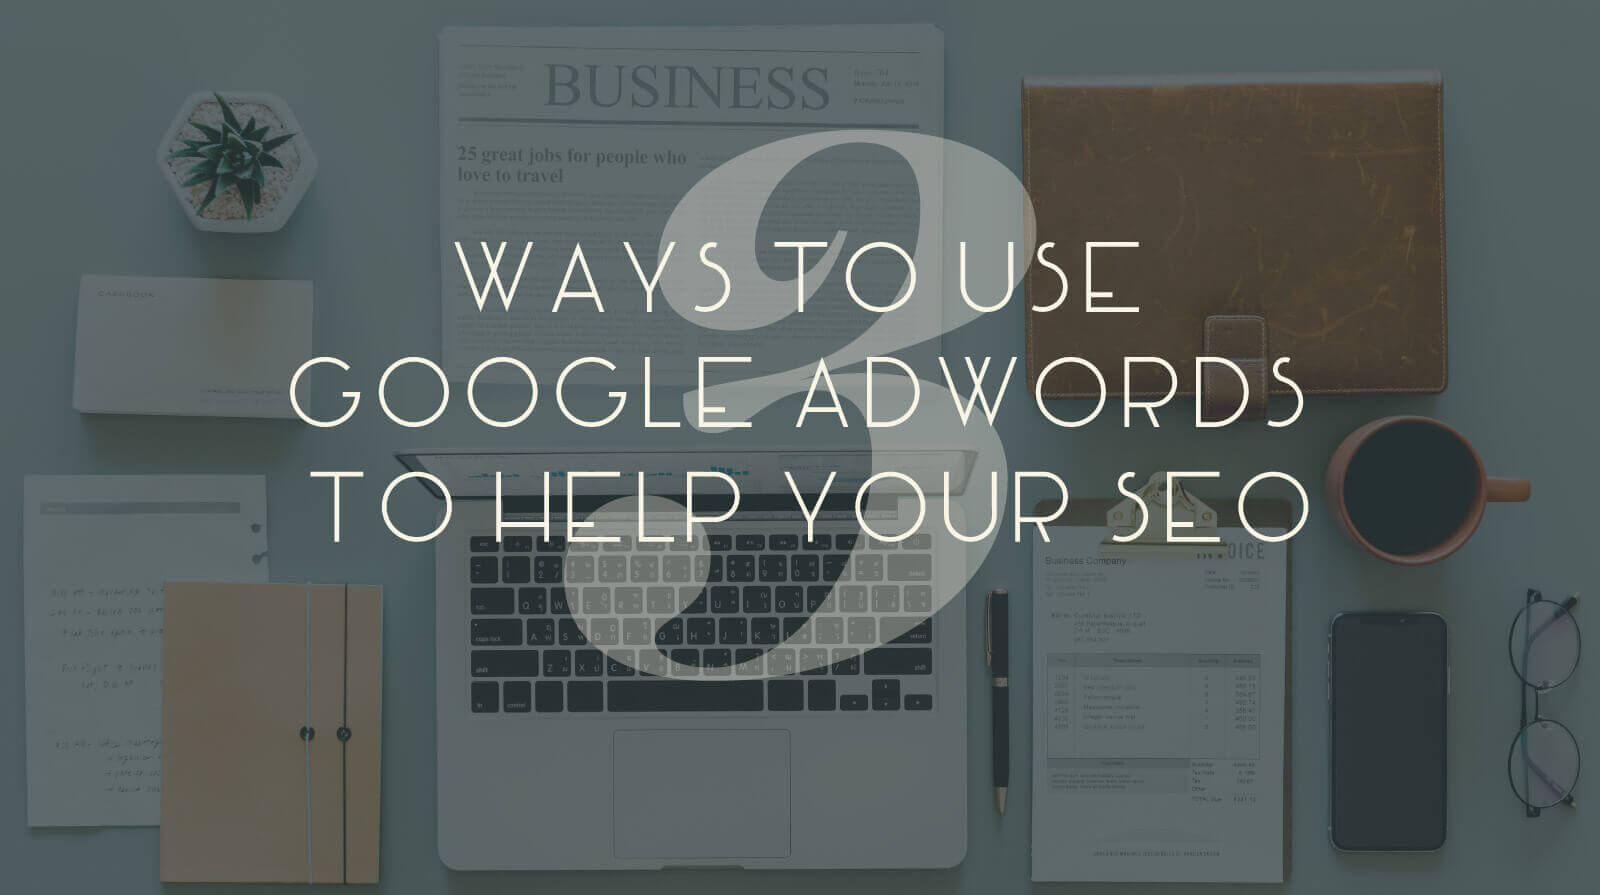 3 ways to use Google AdWords to Help your SEO